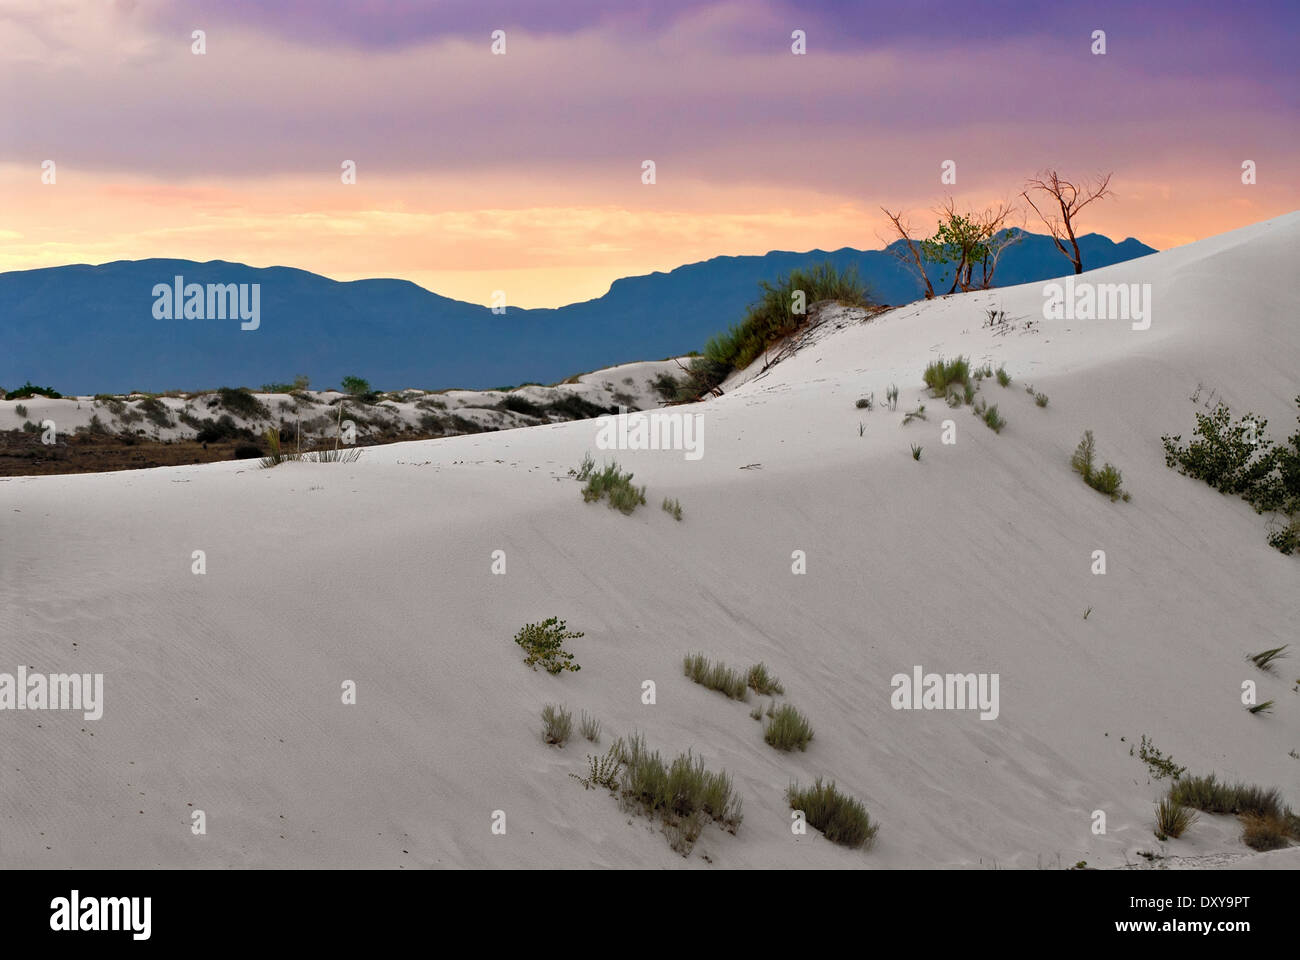 White Sands National Monument at sunset. New Mexico, USA - Stock Image